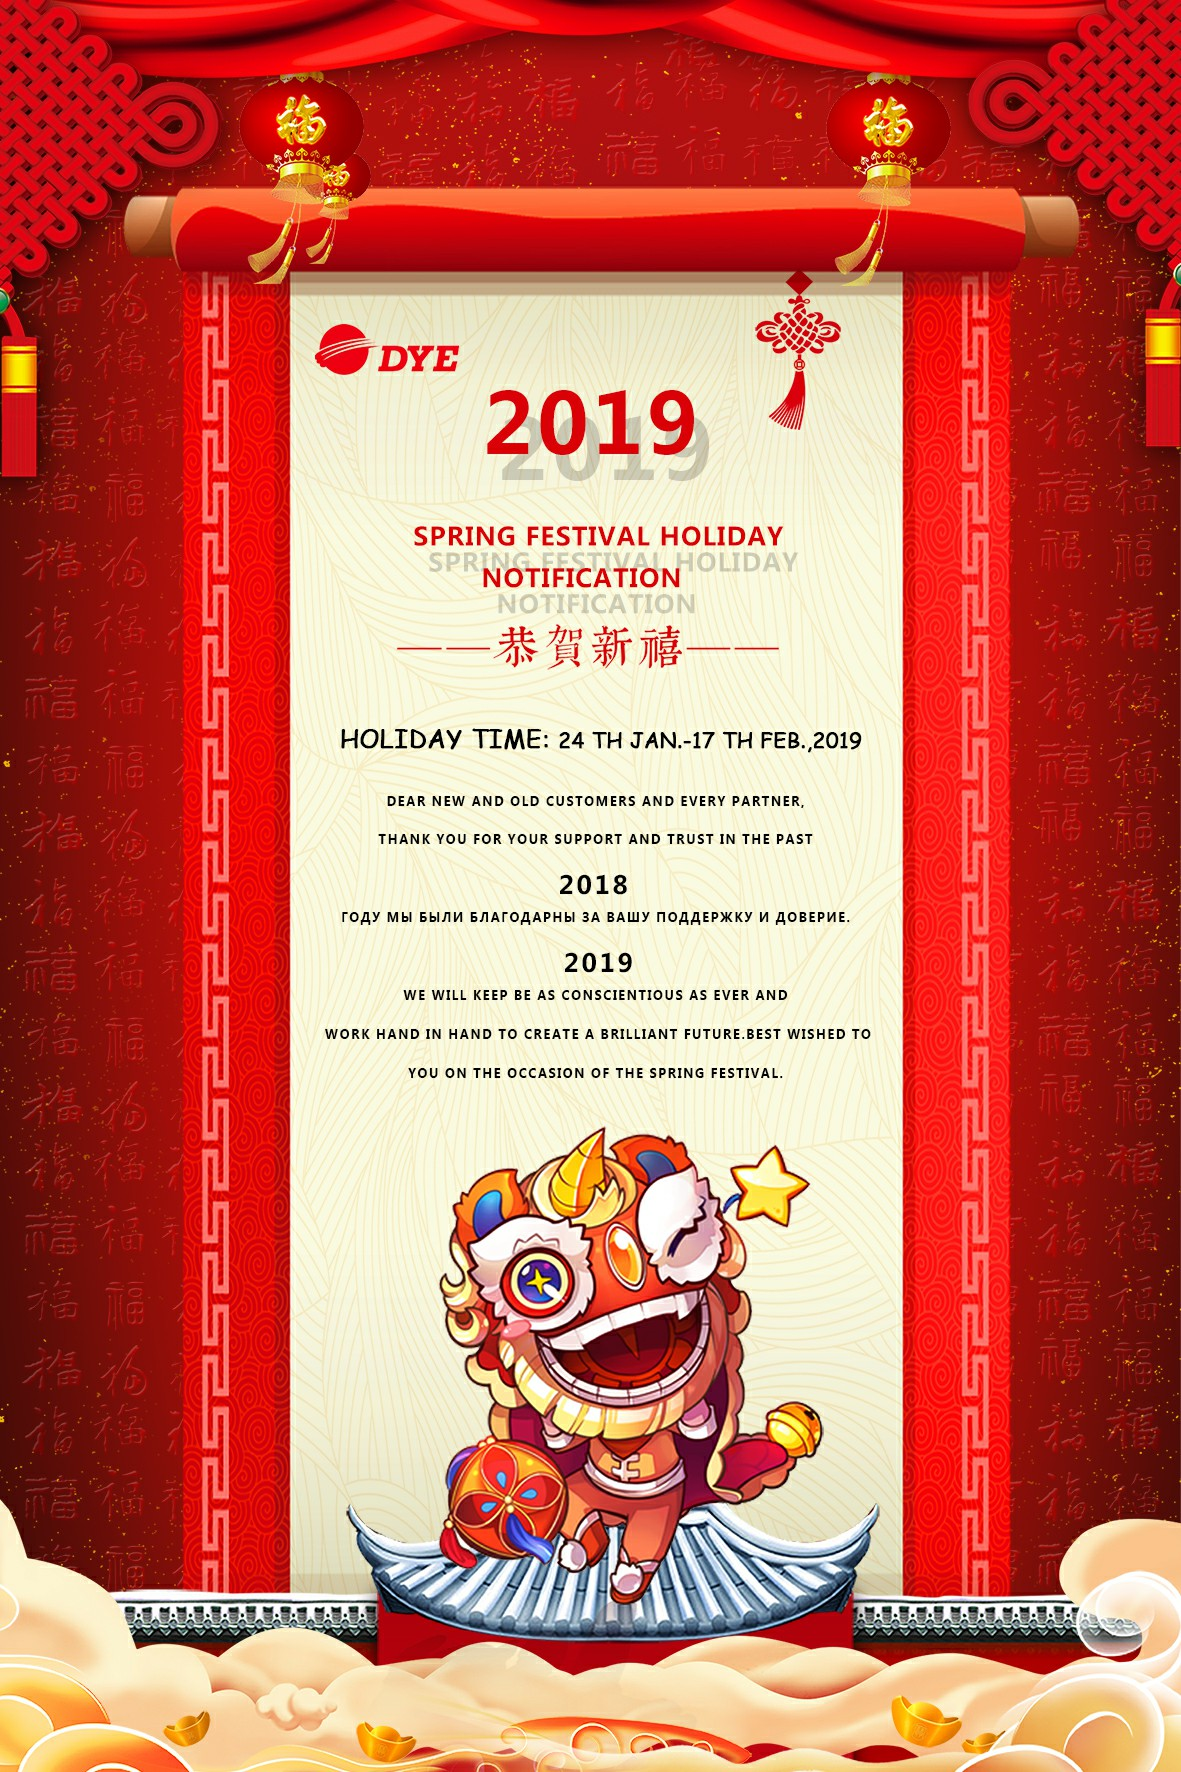 2019 company Spring Festival holiday notification